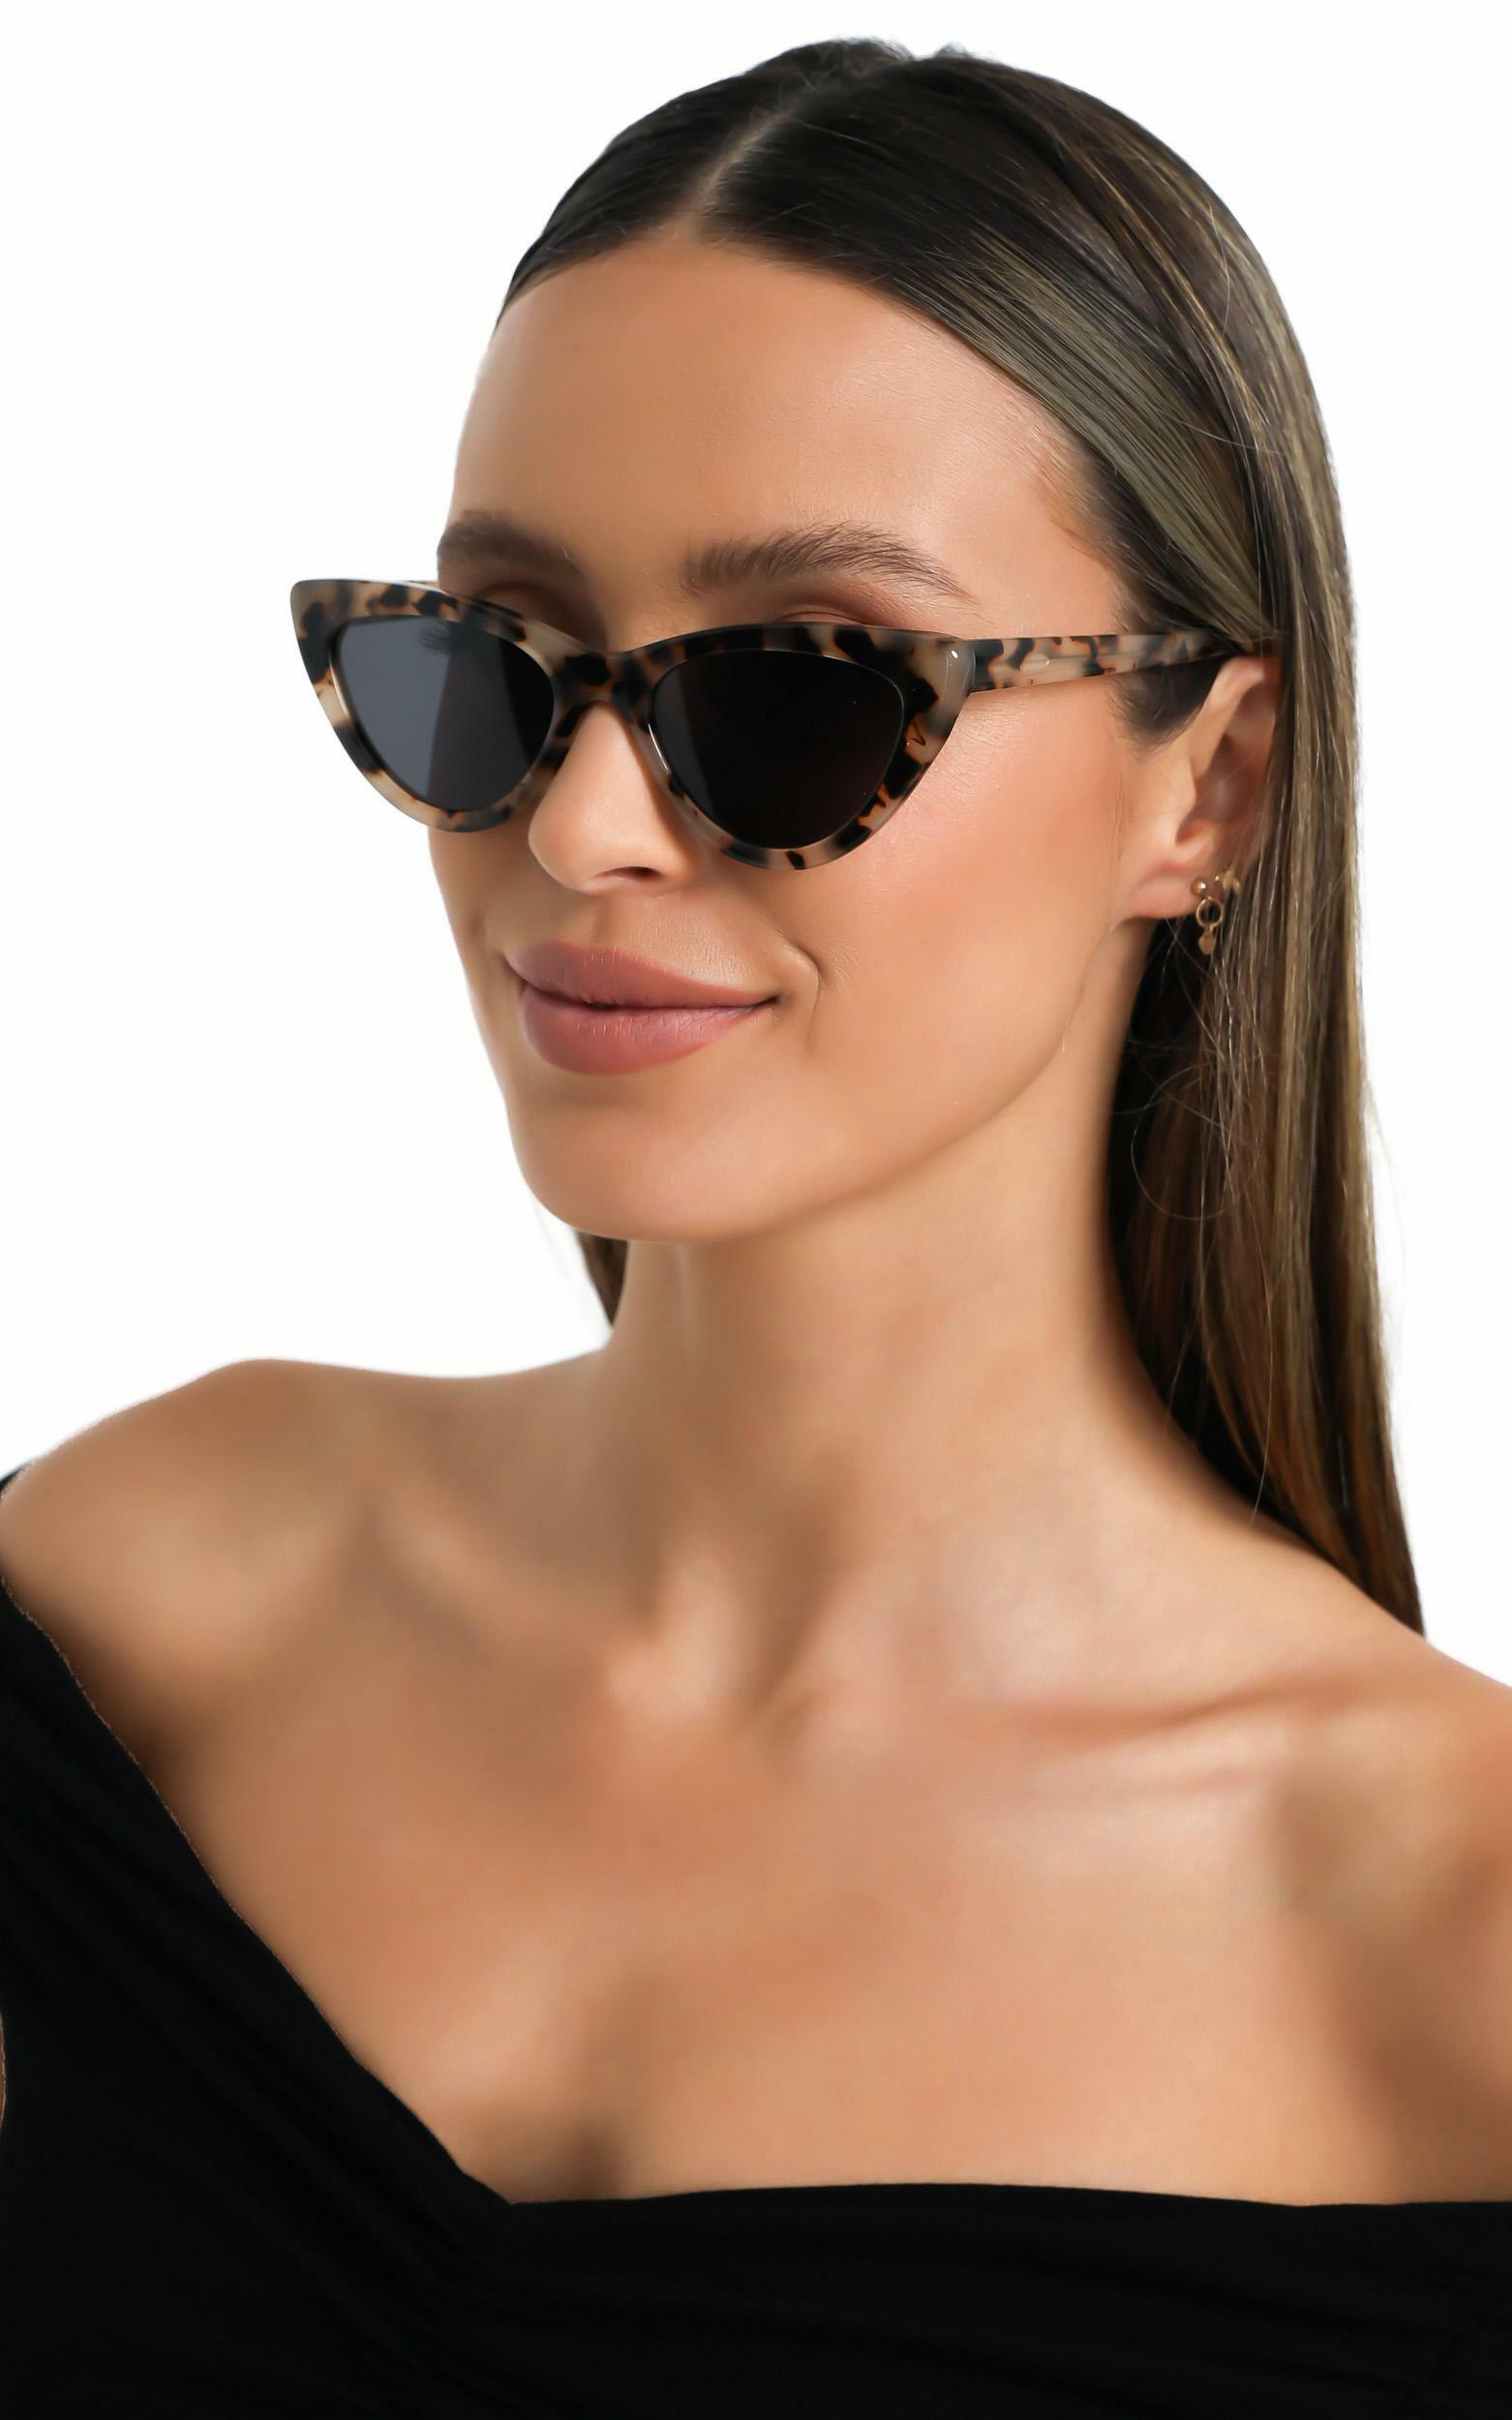 Luv Lou - The Leui Sunglasses in Tort, Brown, hi-res image number null